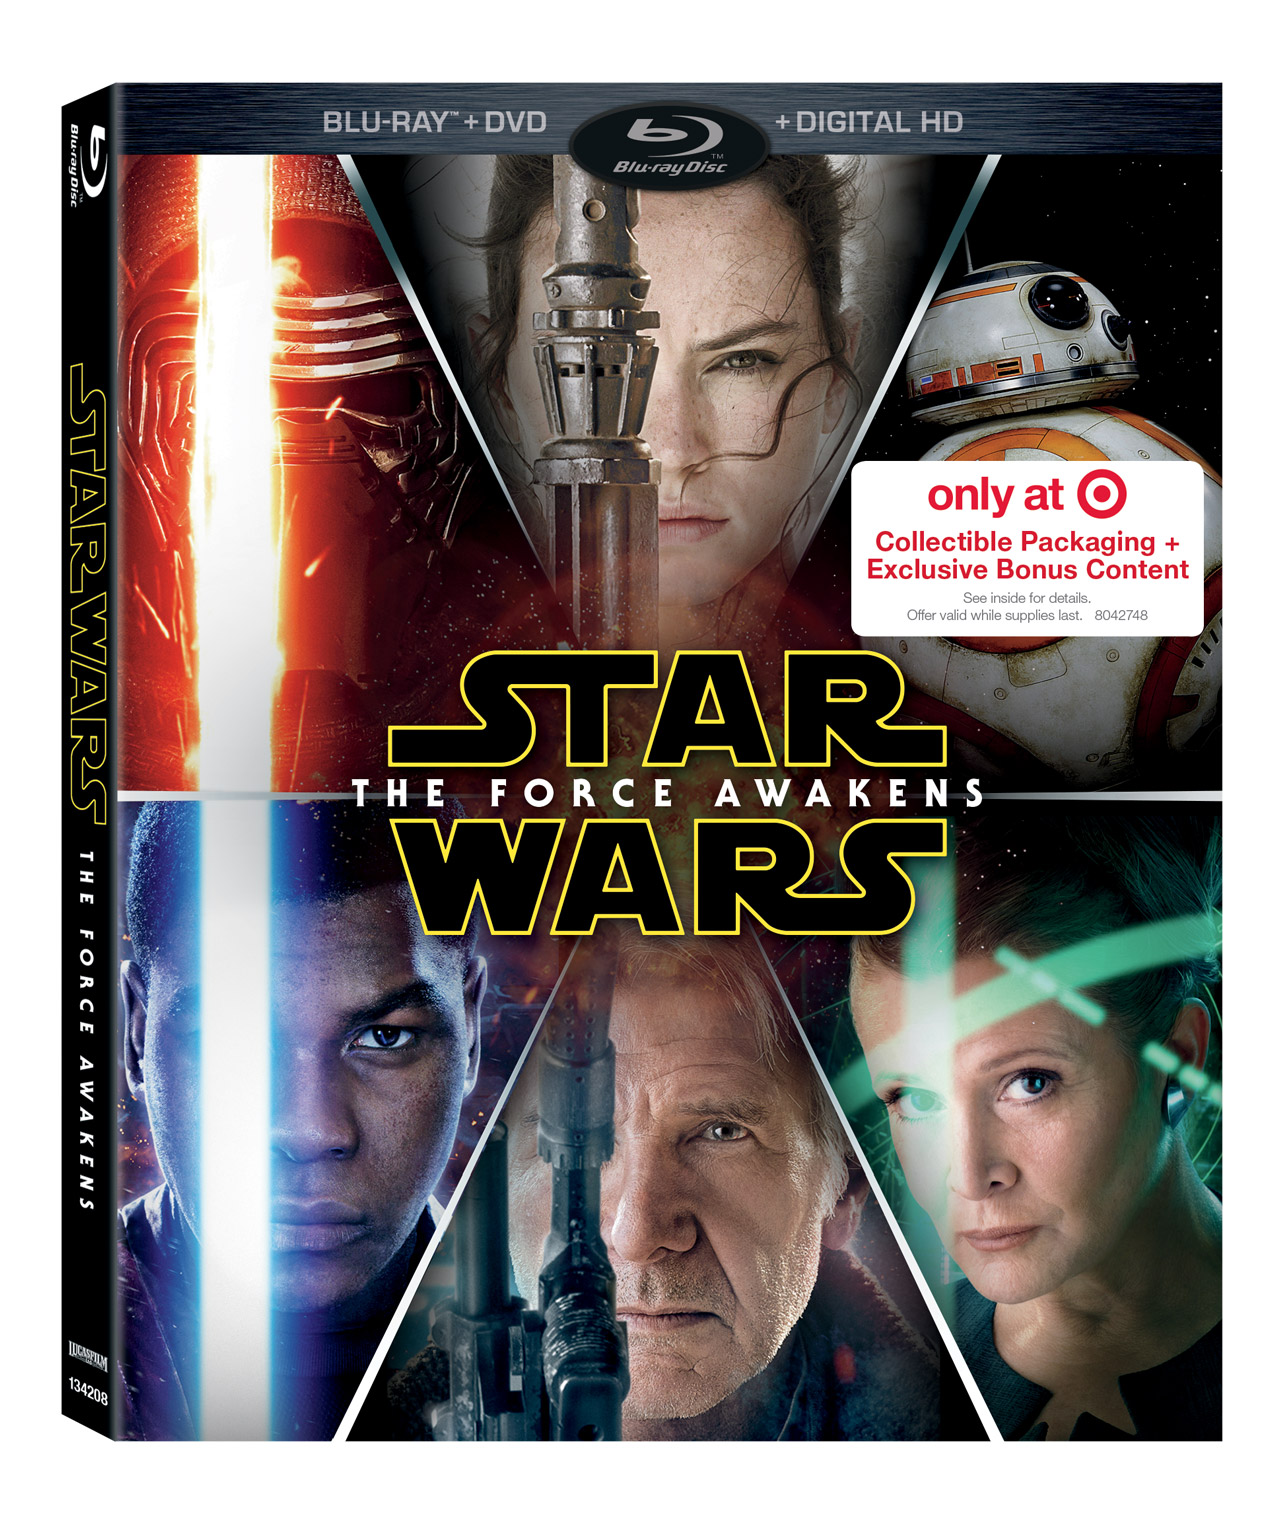 Star Wars: The Force Awakens Comes to Blu-ray, DVD, and